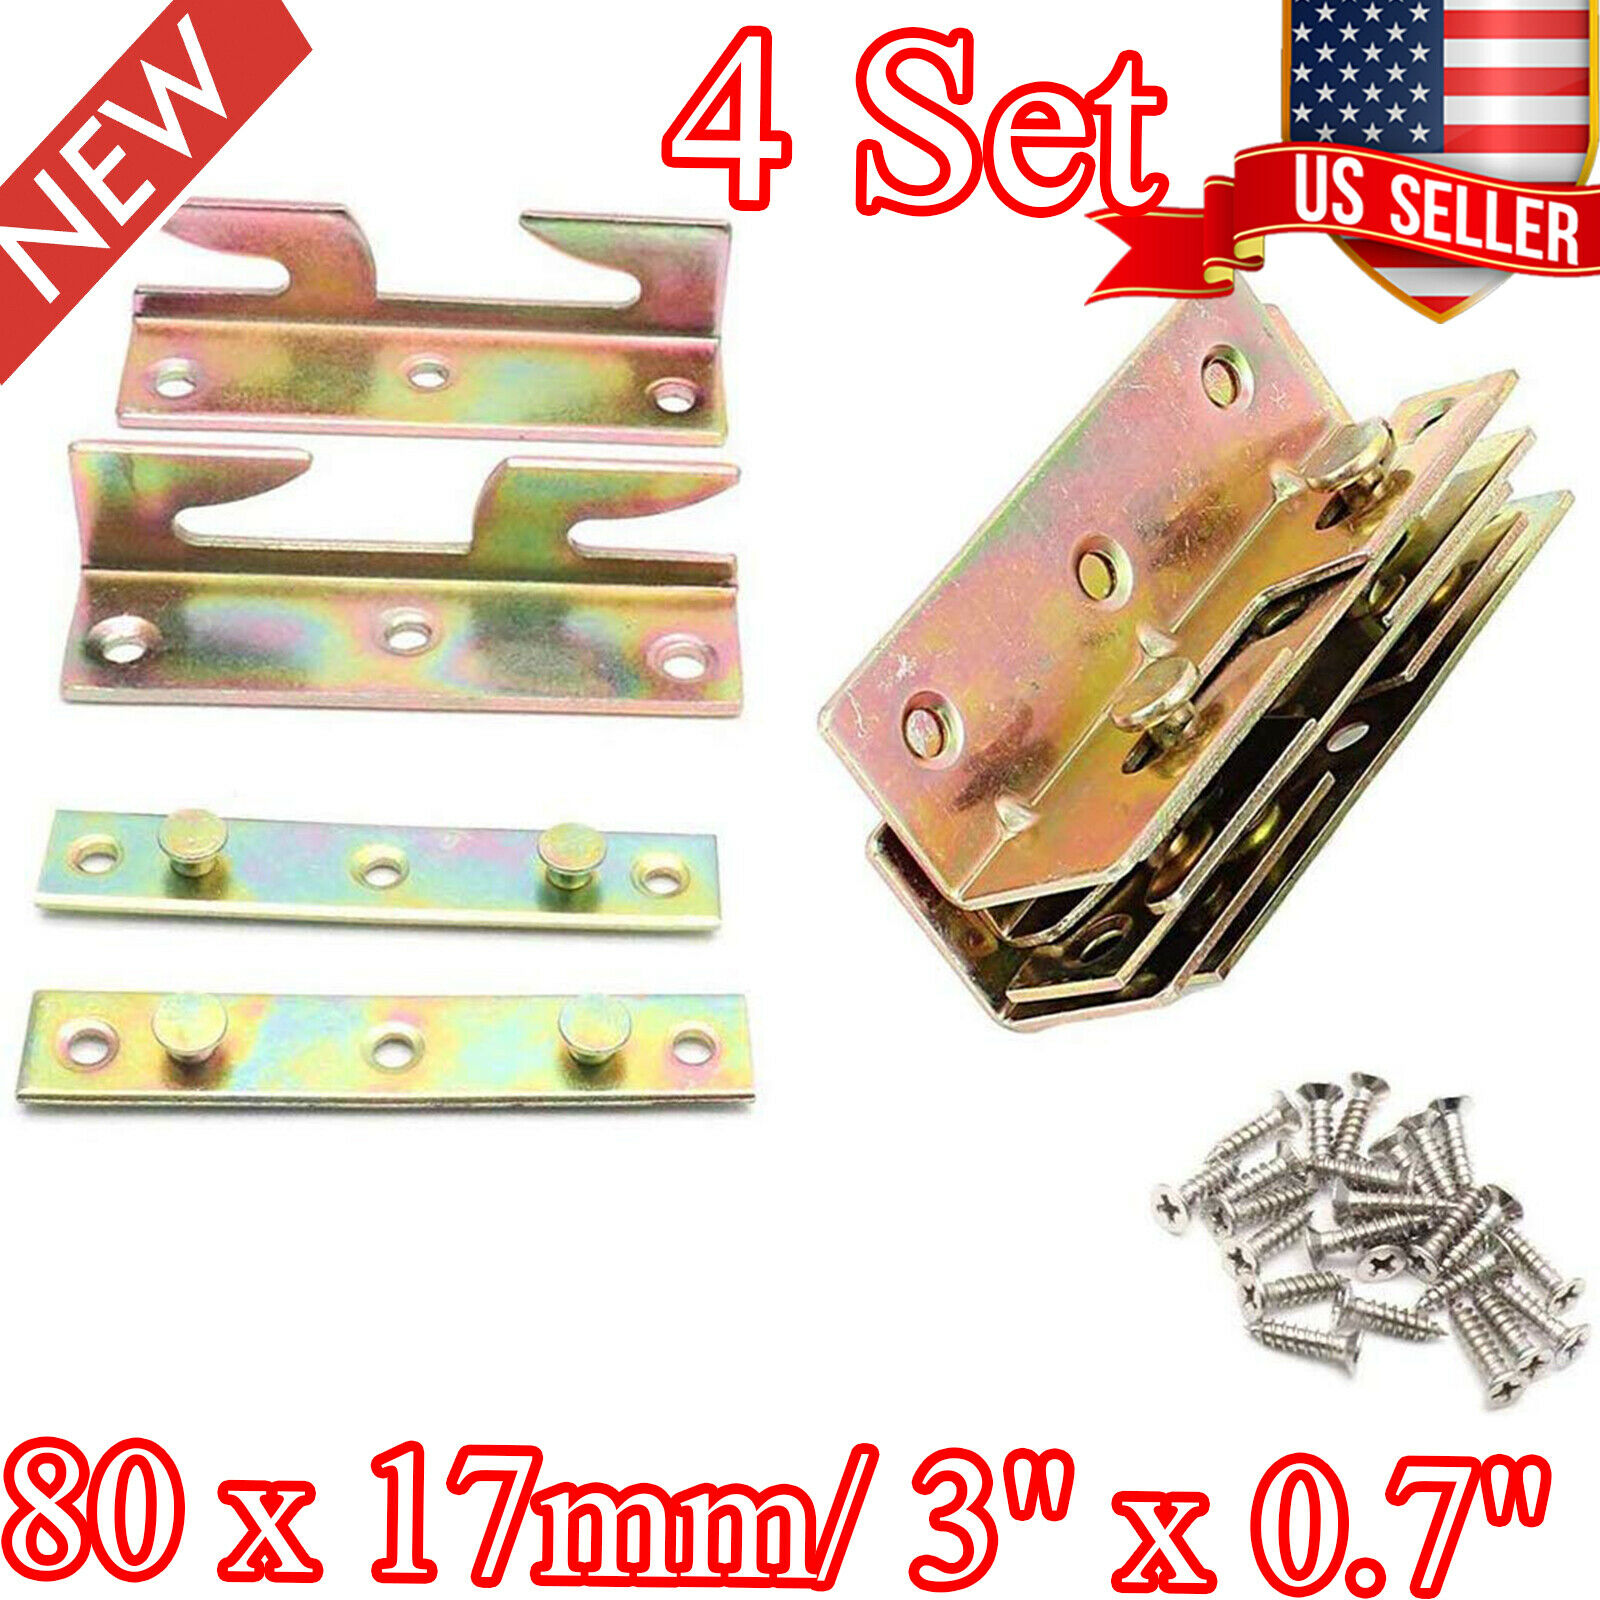 PZRT 4Set Furniture Hardware Double End Head Rod Connection Cam Fittings Furniture Board Panel Connection Accessories 84mm